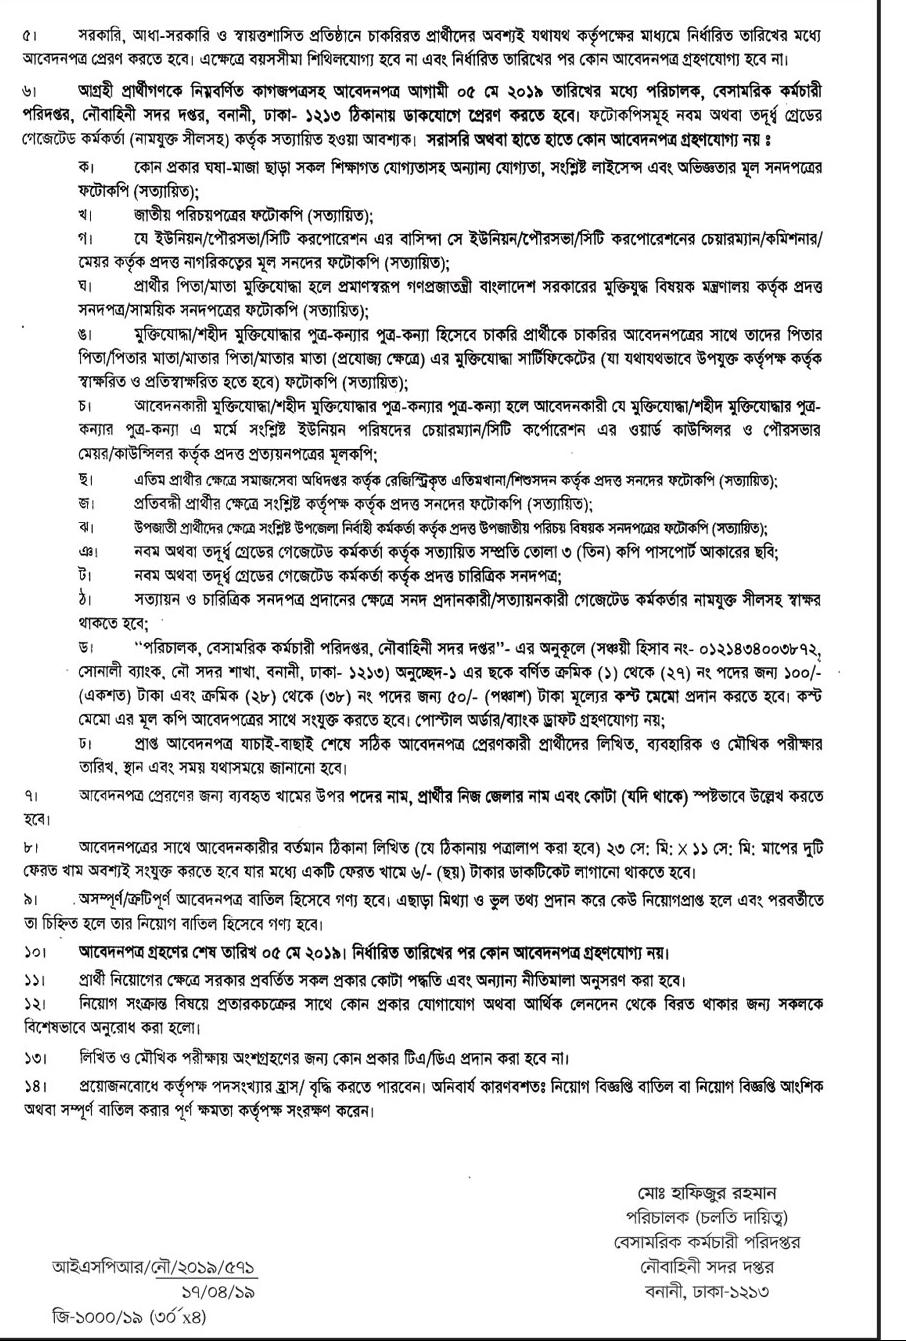 Bangladesh Navy Civilian Job Circular 2019